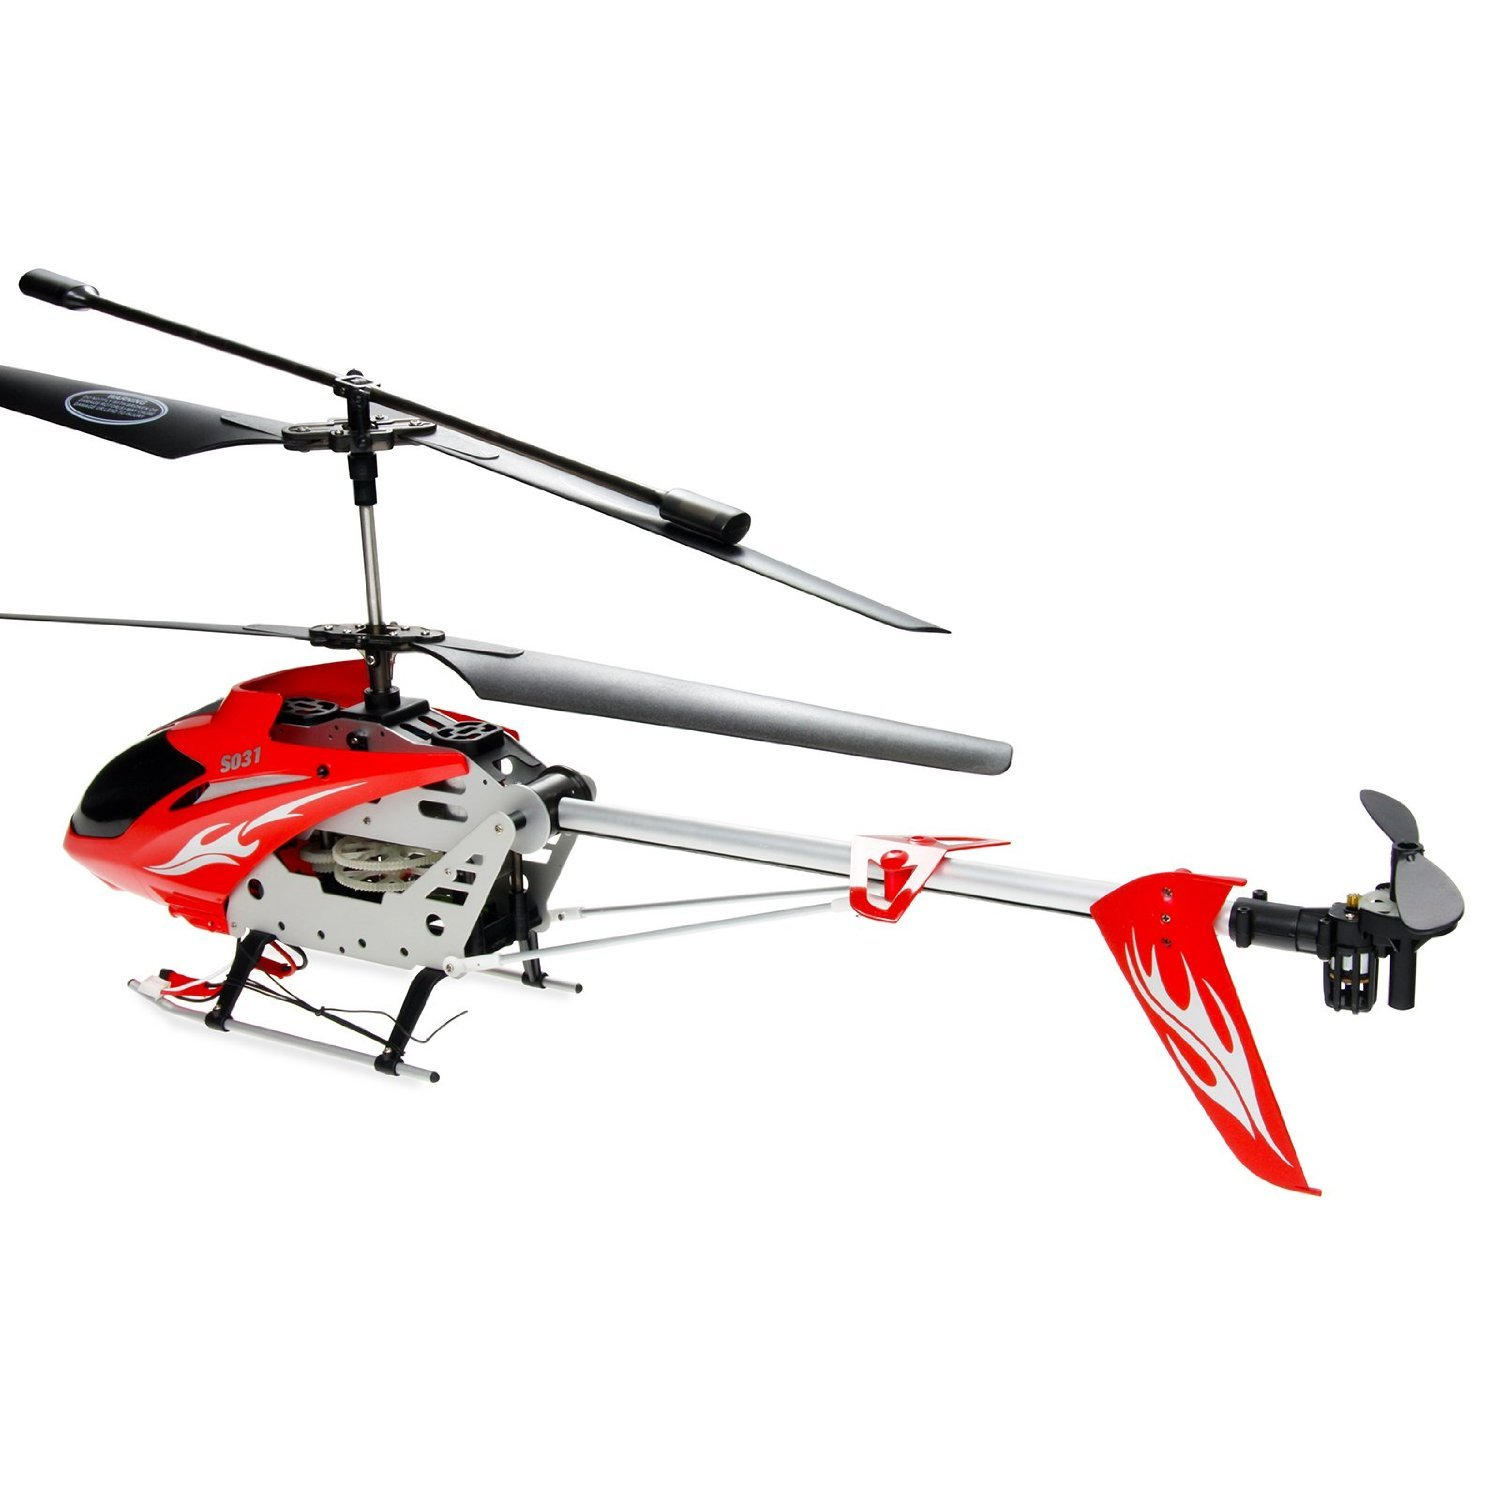 Syma S031G 3.5 Channel RC Syma Helicopter Helicopter RC - Red B0043G3JWS, 大西町:f734be02 --- capela.dominiotemporario.com